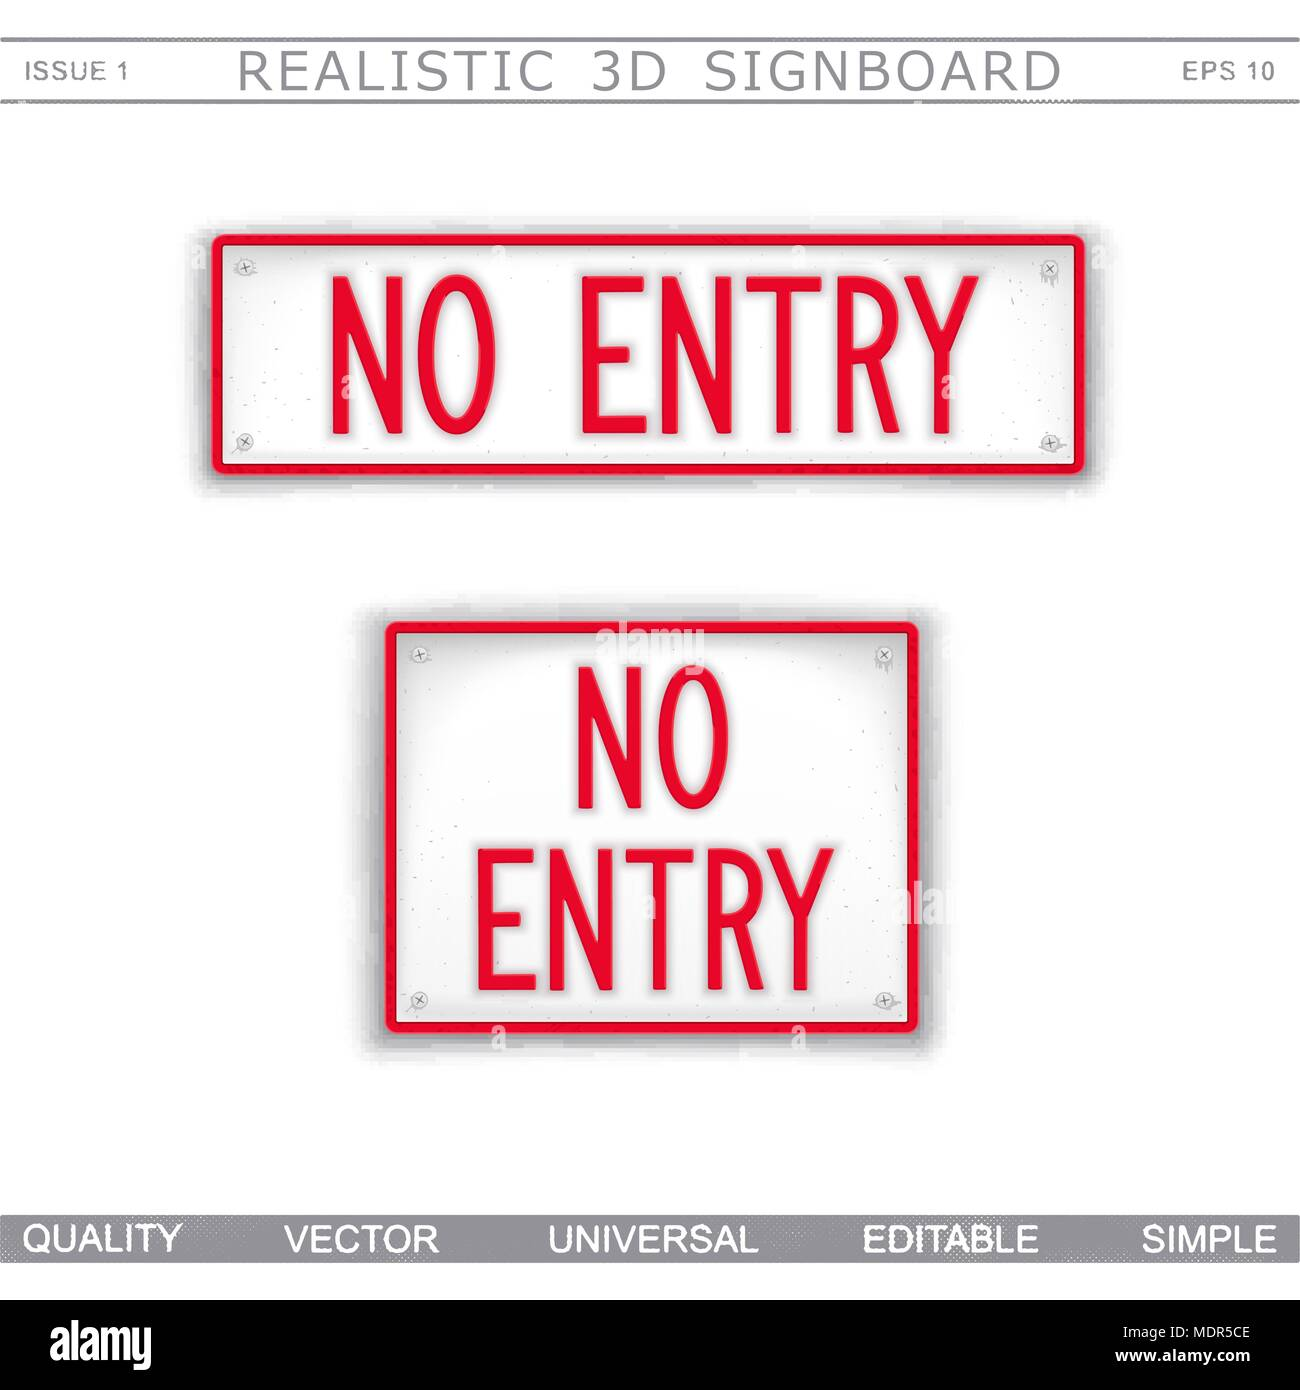 No Entry. Information signboard. Top view. Vector design elements - Stock Image